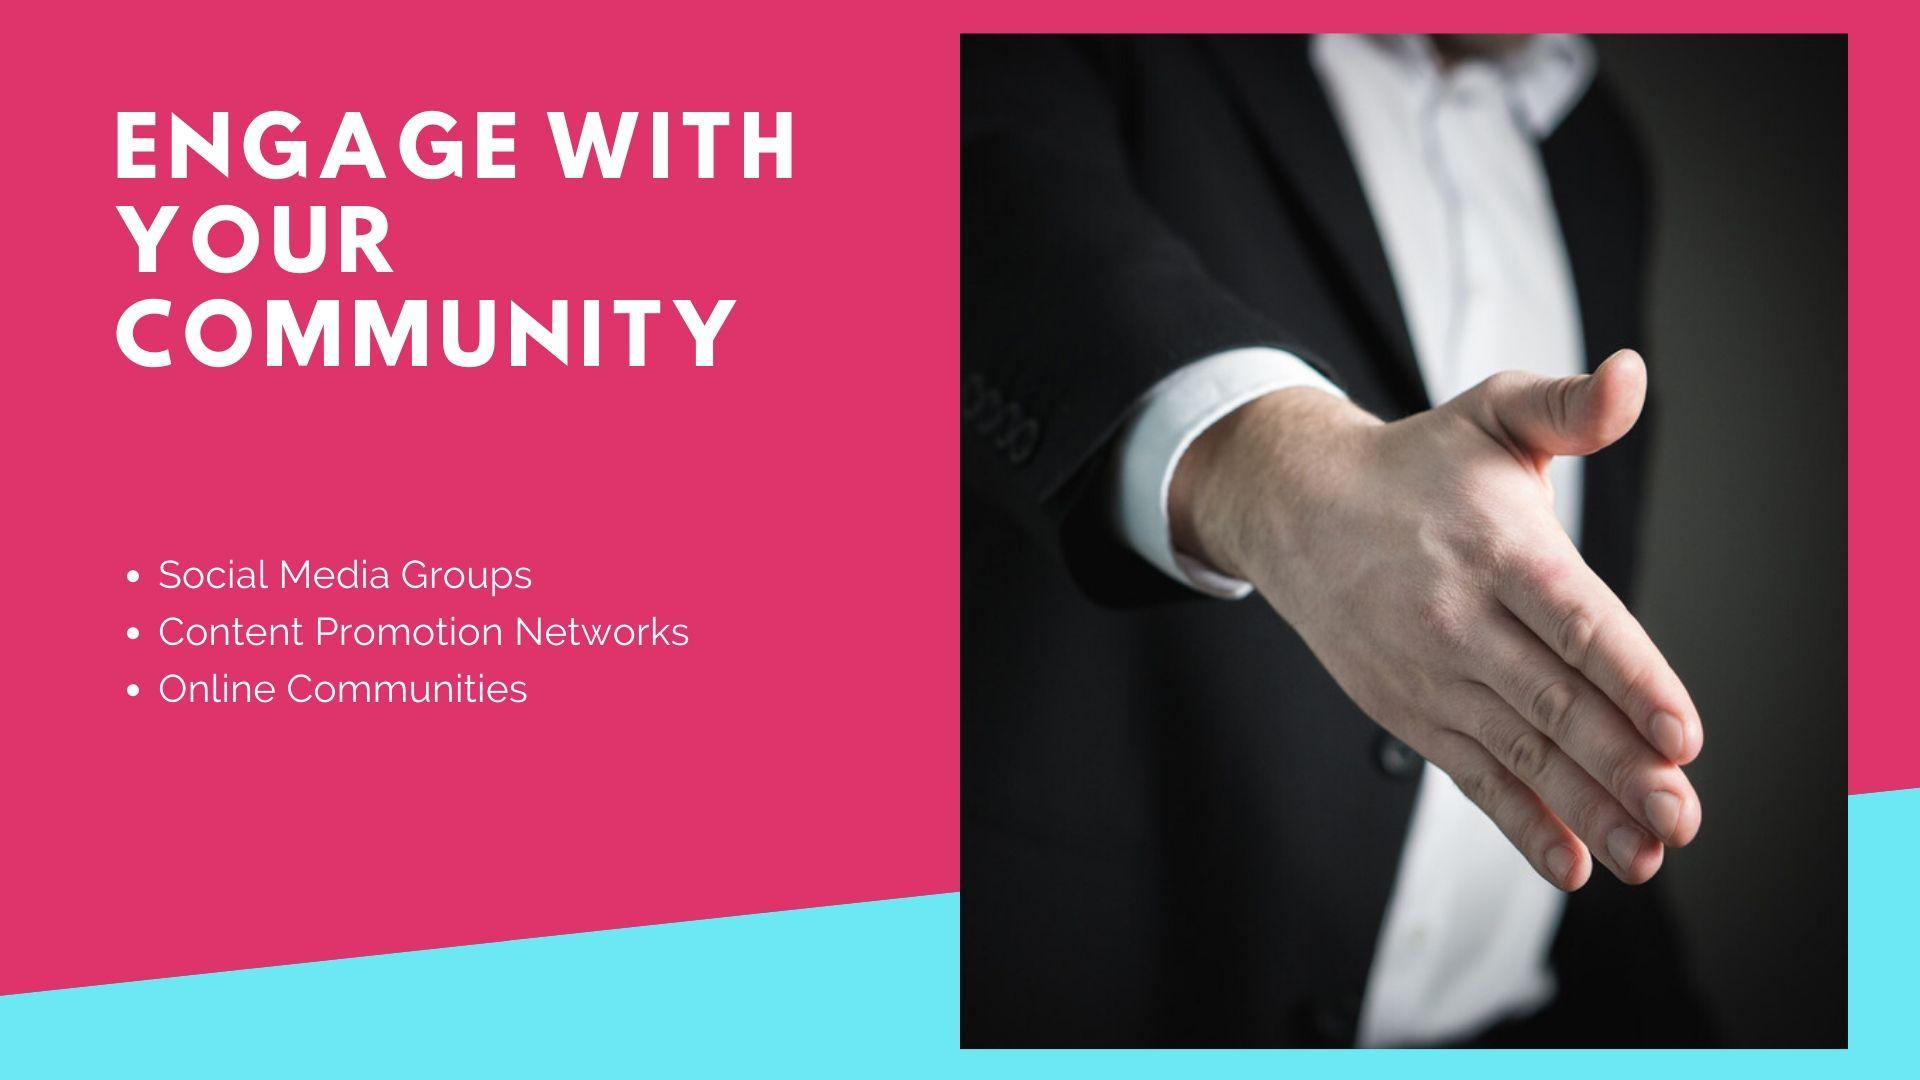 Content - Engage with your community